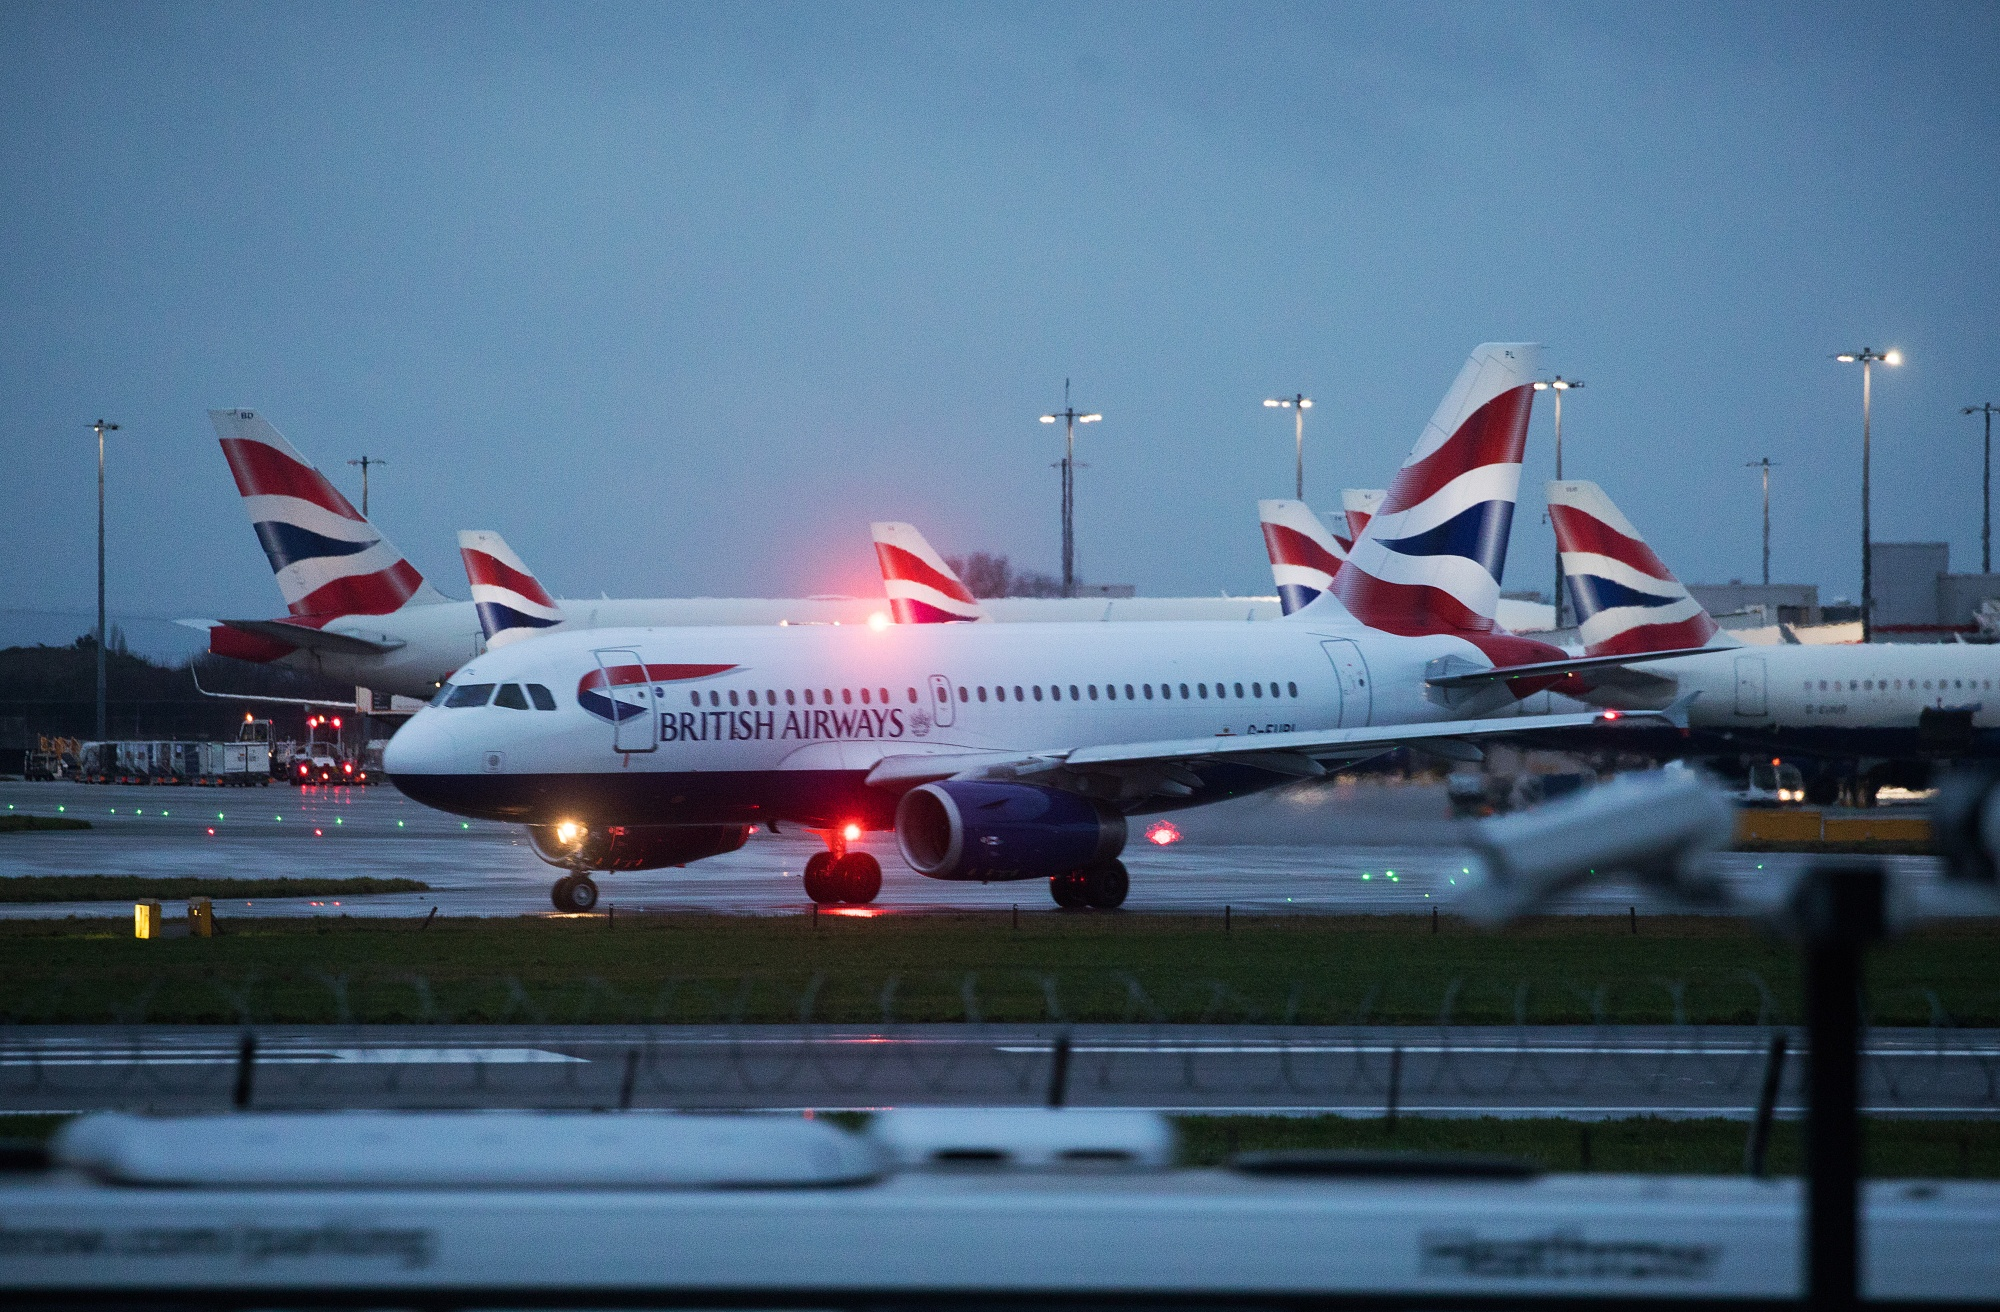 Aircraft operated by British Airways on the runway at London Heathrow Airport.